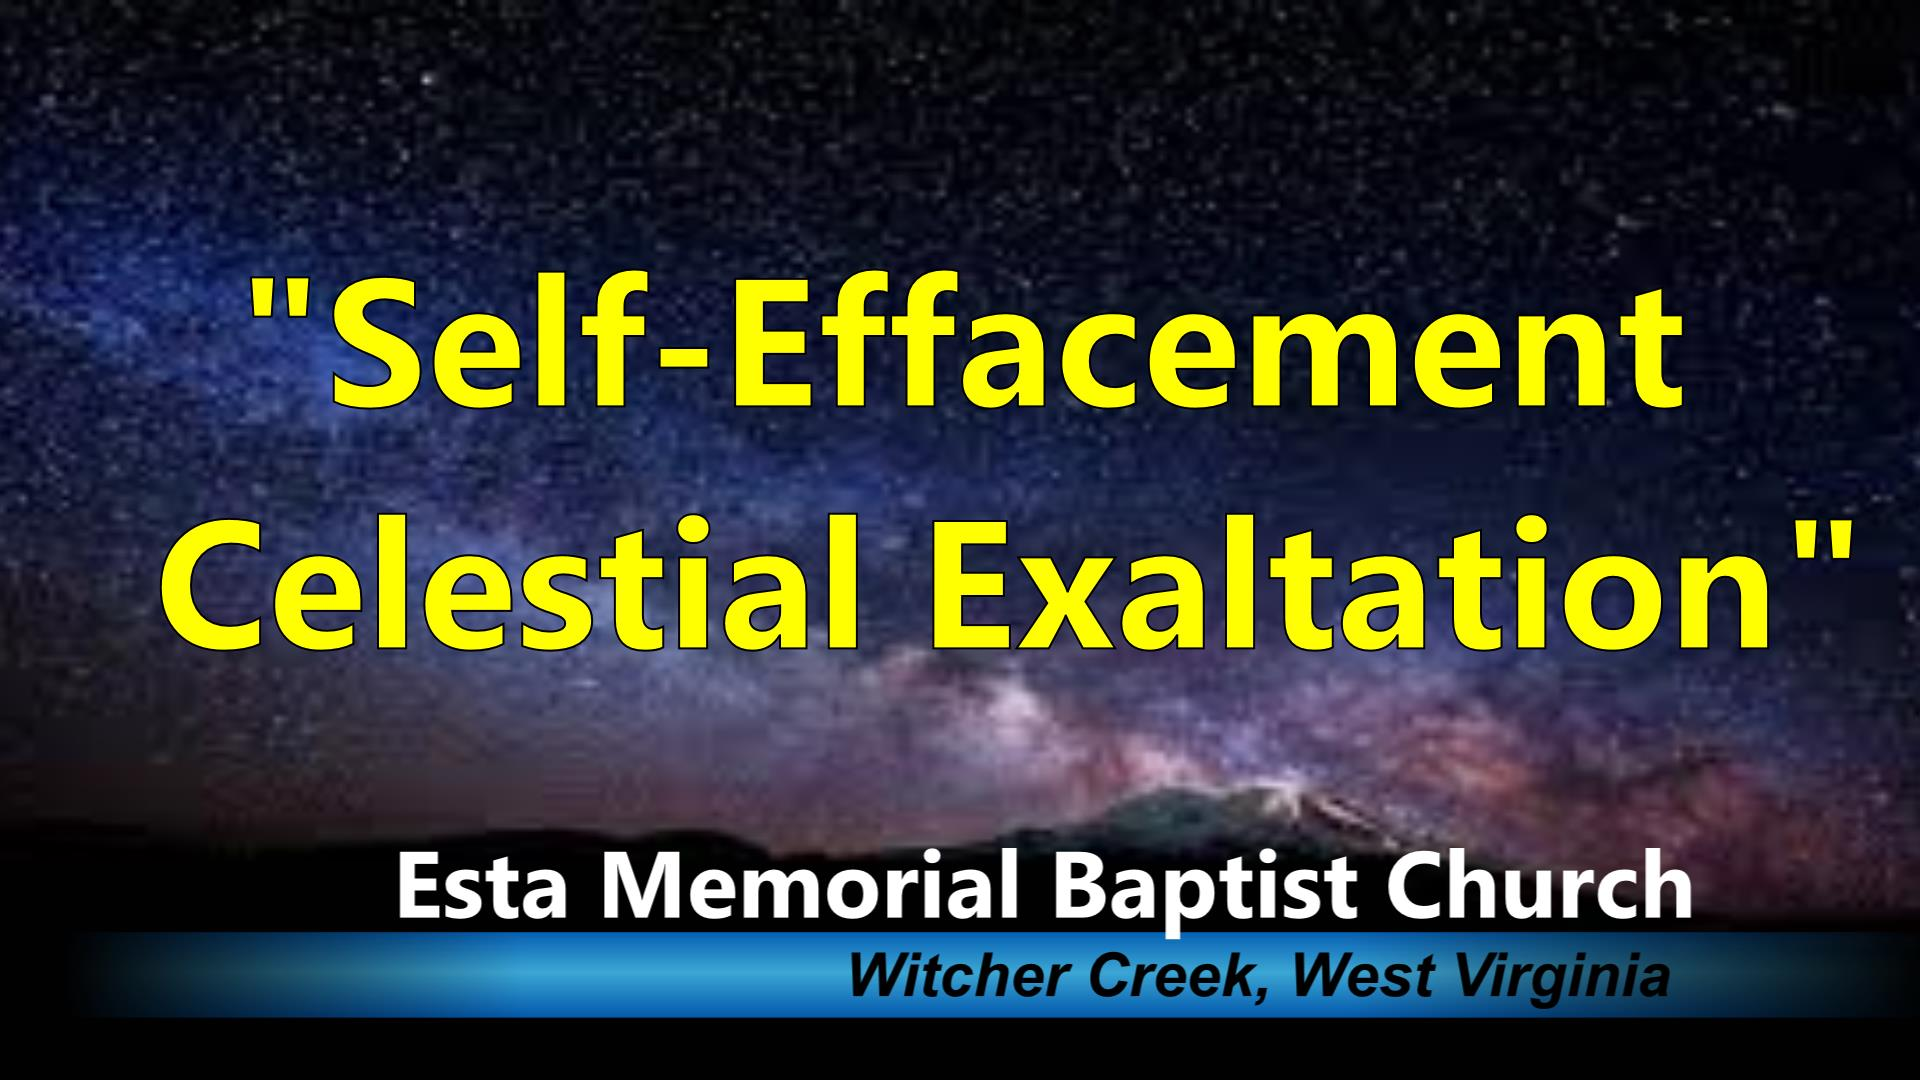 SELF EFFACEMENT CELESTIAL EXALTATION